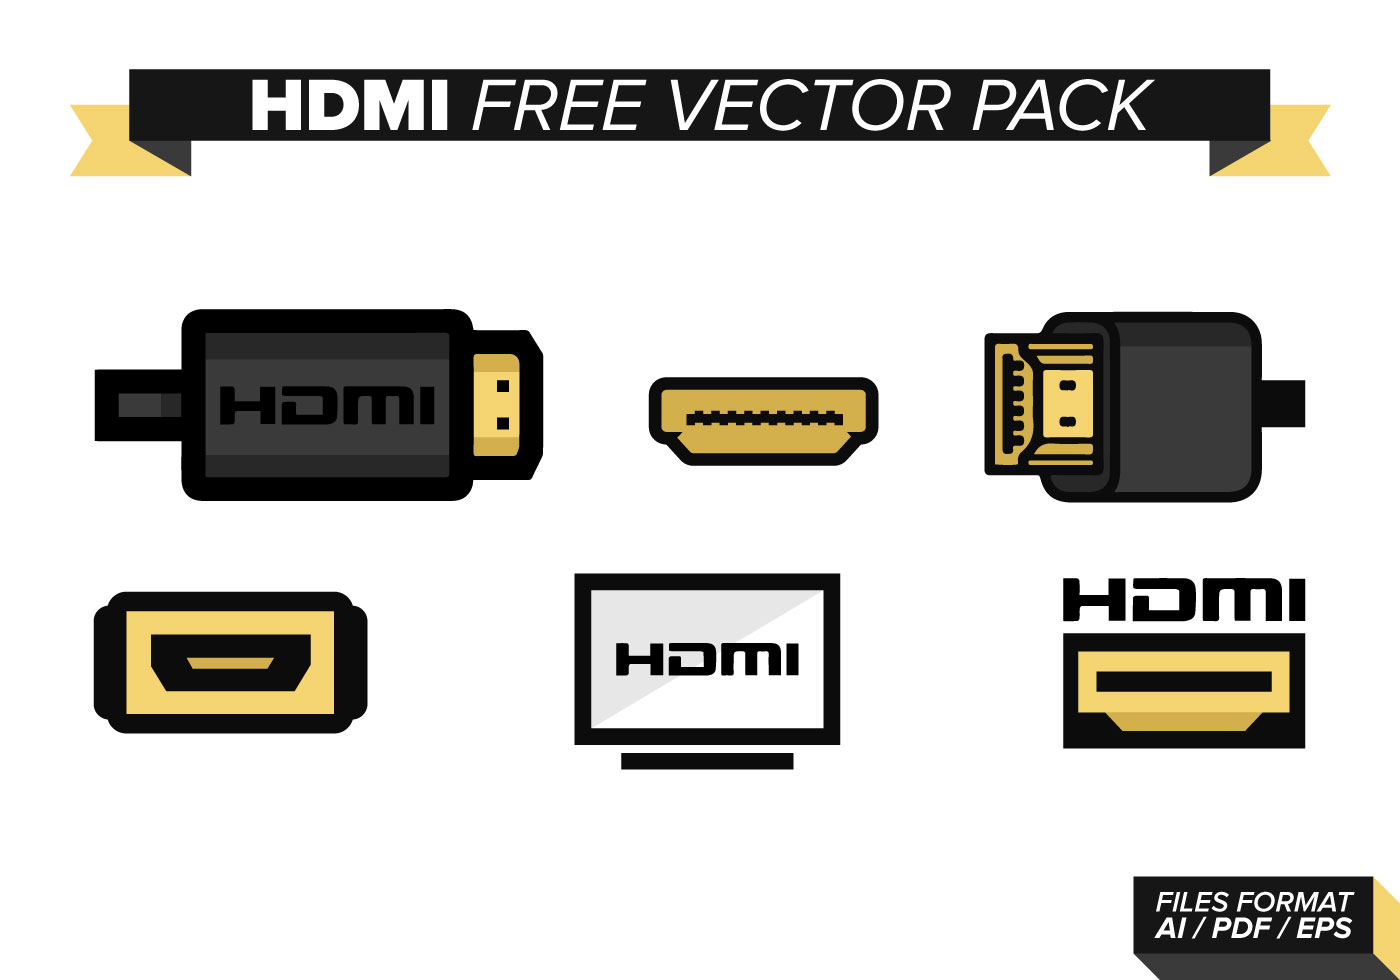 hdmi free vector pack   download free vector art stock